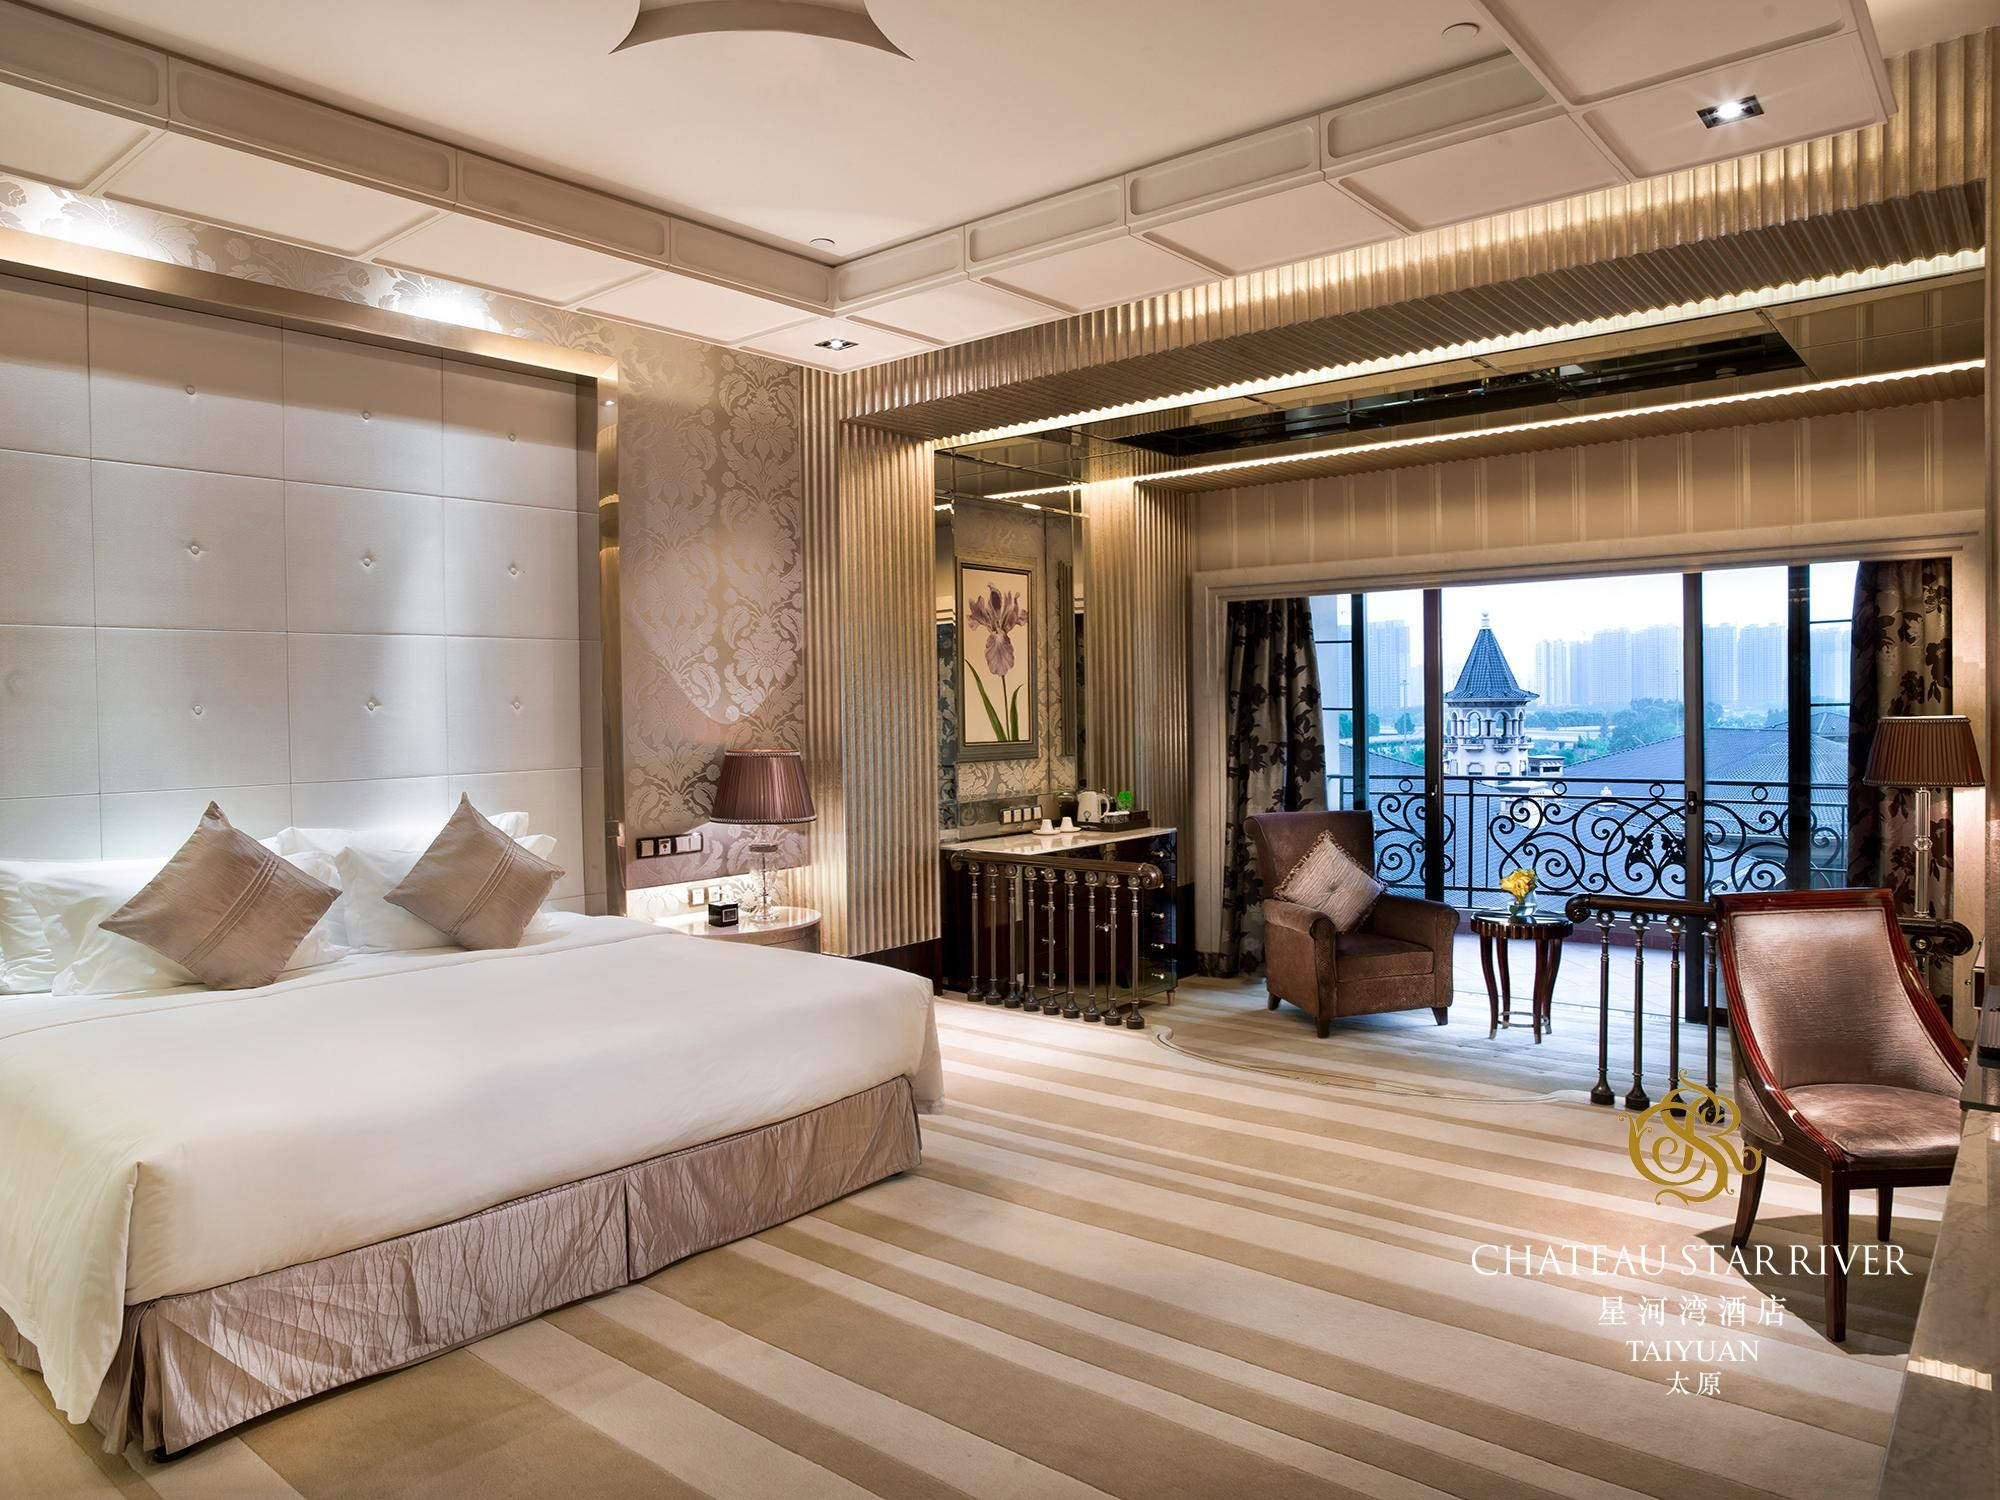 Reviews Chateau Star River Taiyuan